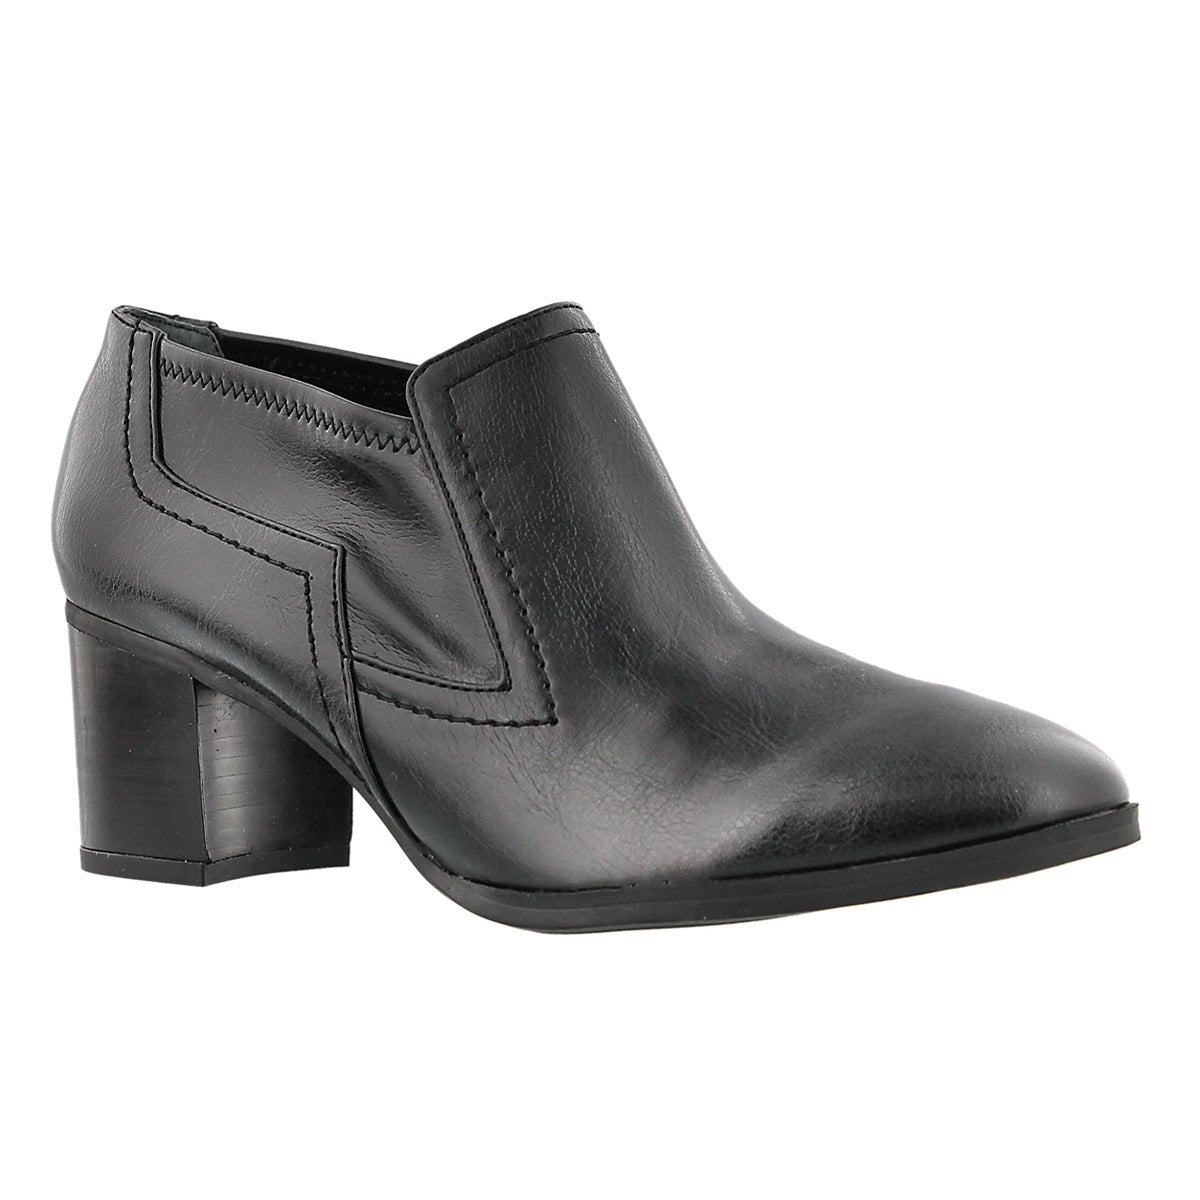 Lds Ashland blk slip on dress shoe